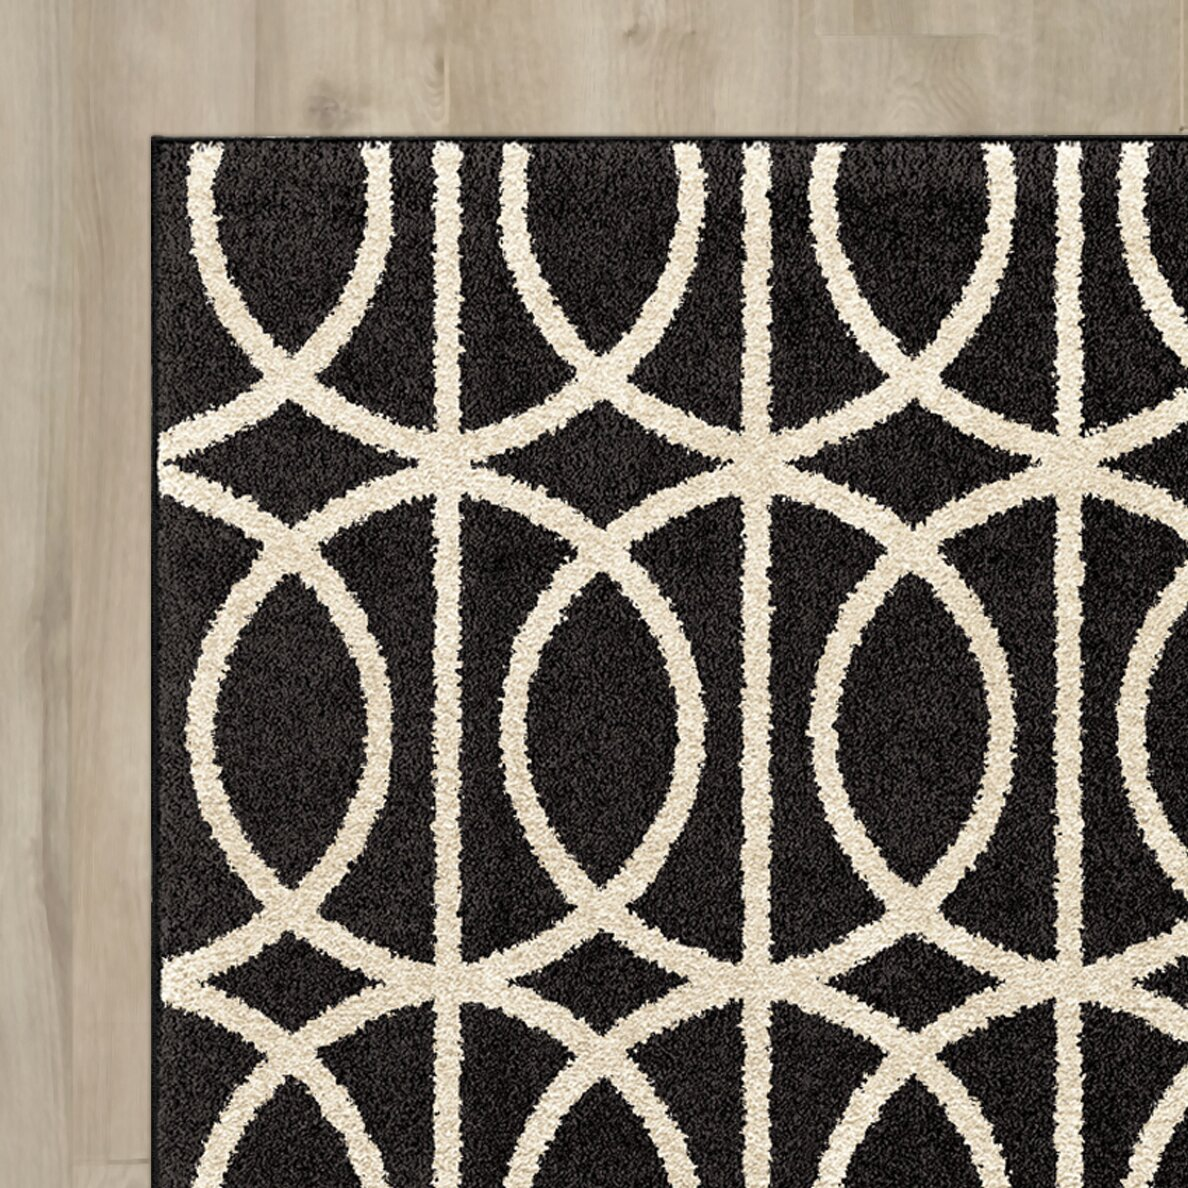 Red barrel studio falmer black cream area rug wayfair for 10x10 living room rugs